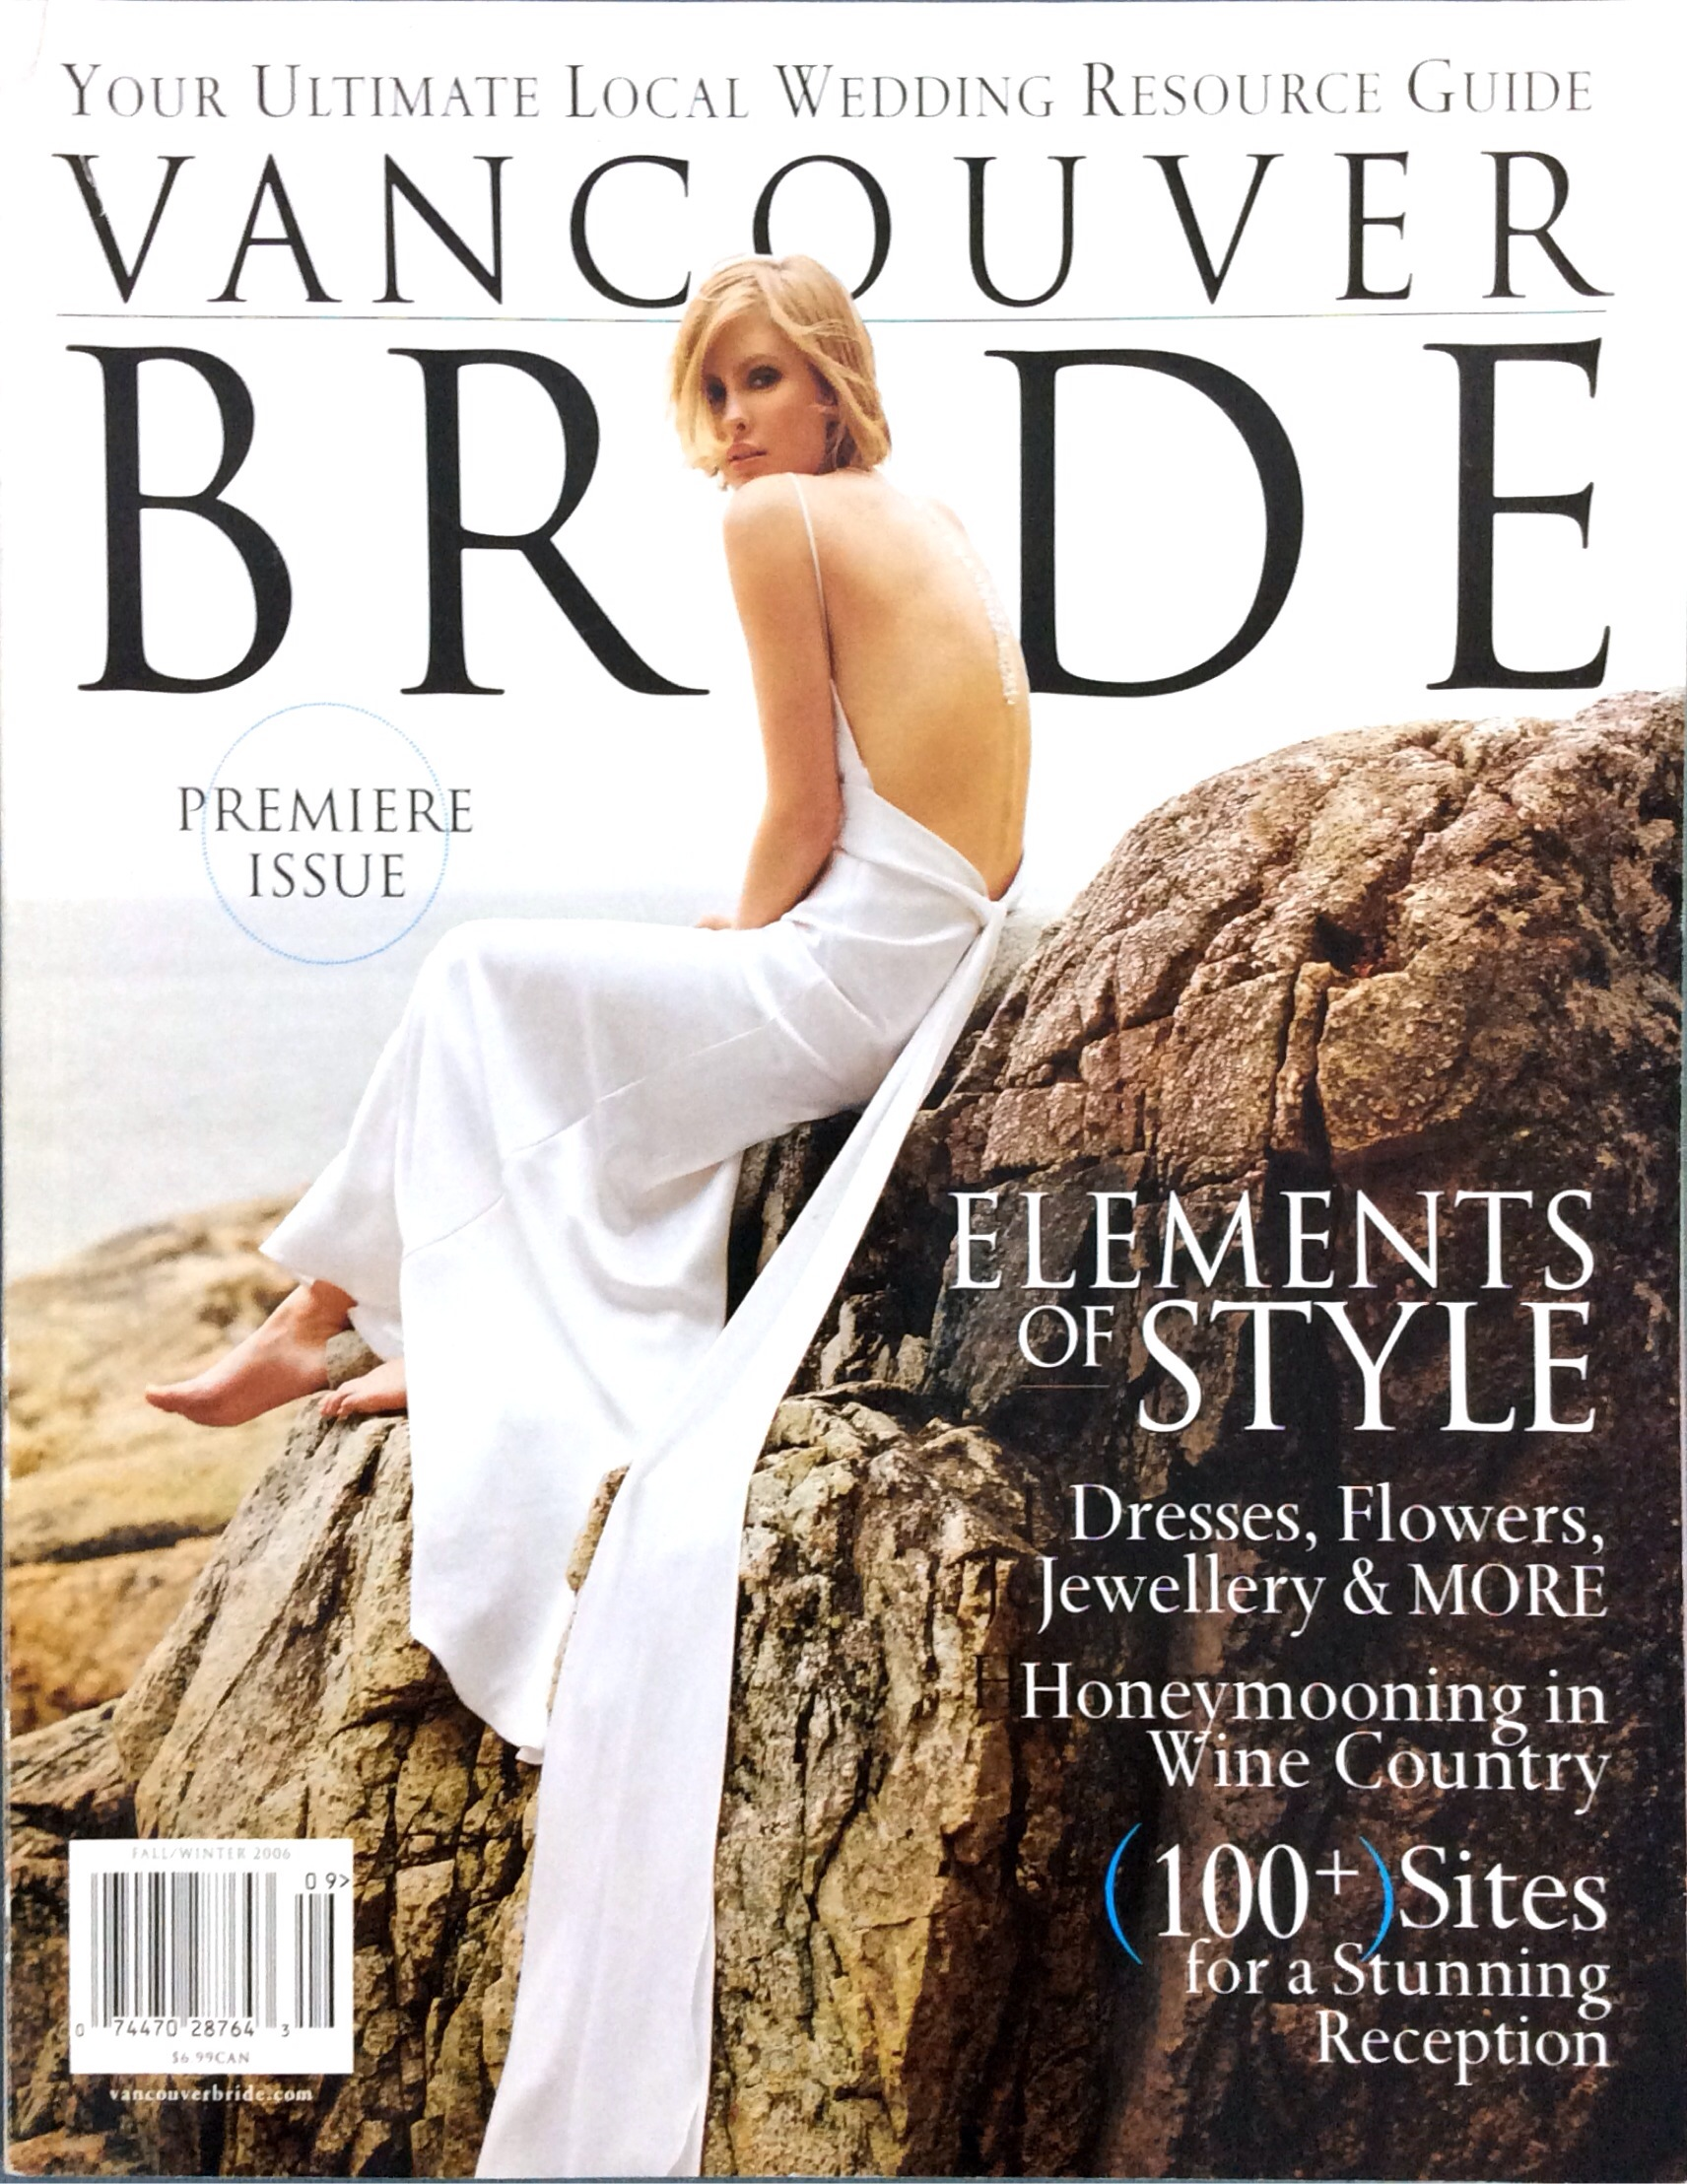 Passion dress on the cover of Vancouver Bride magazine